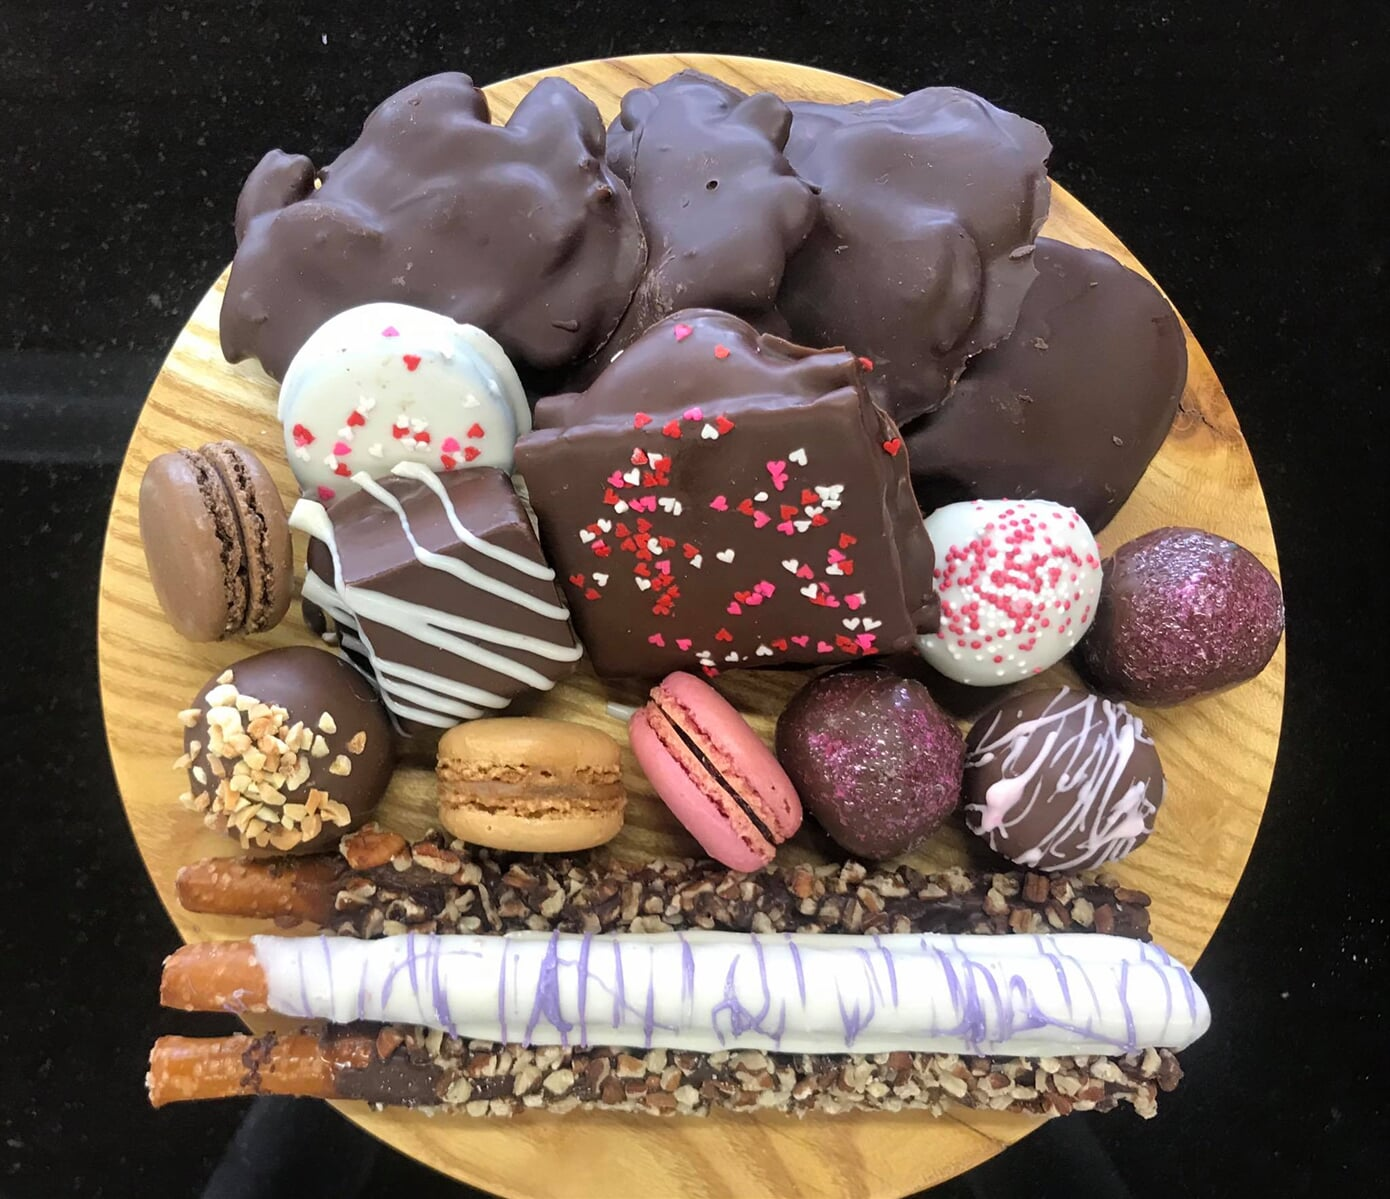 Plate full of sweet treats and Confections